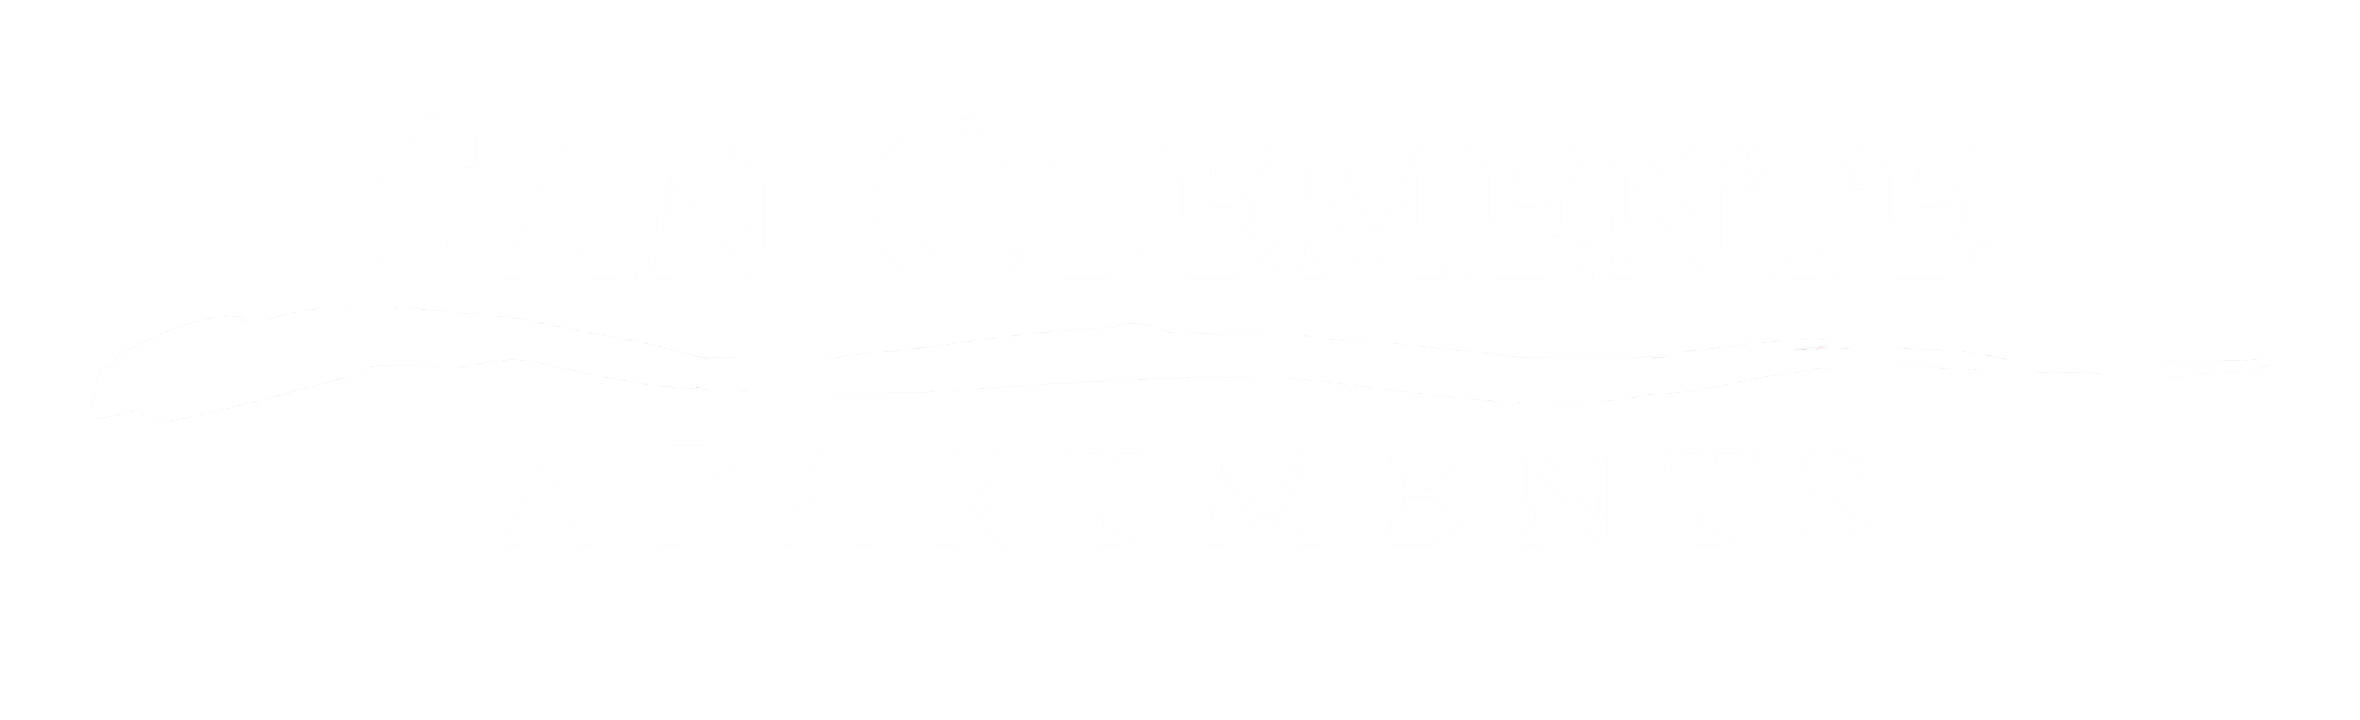 San Clemente Apartments Property Logo 1